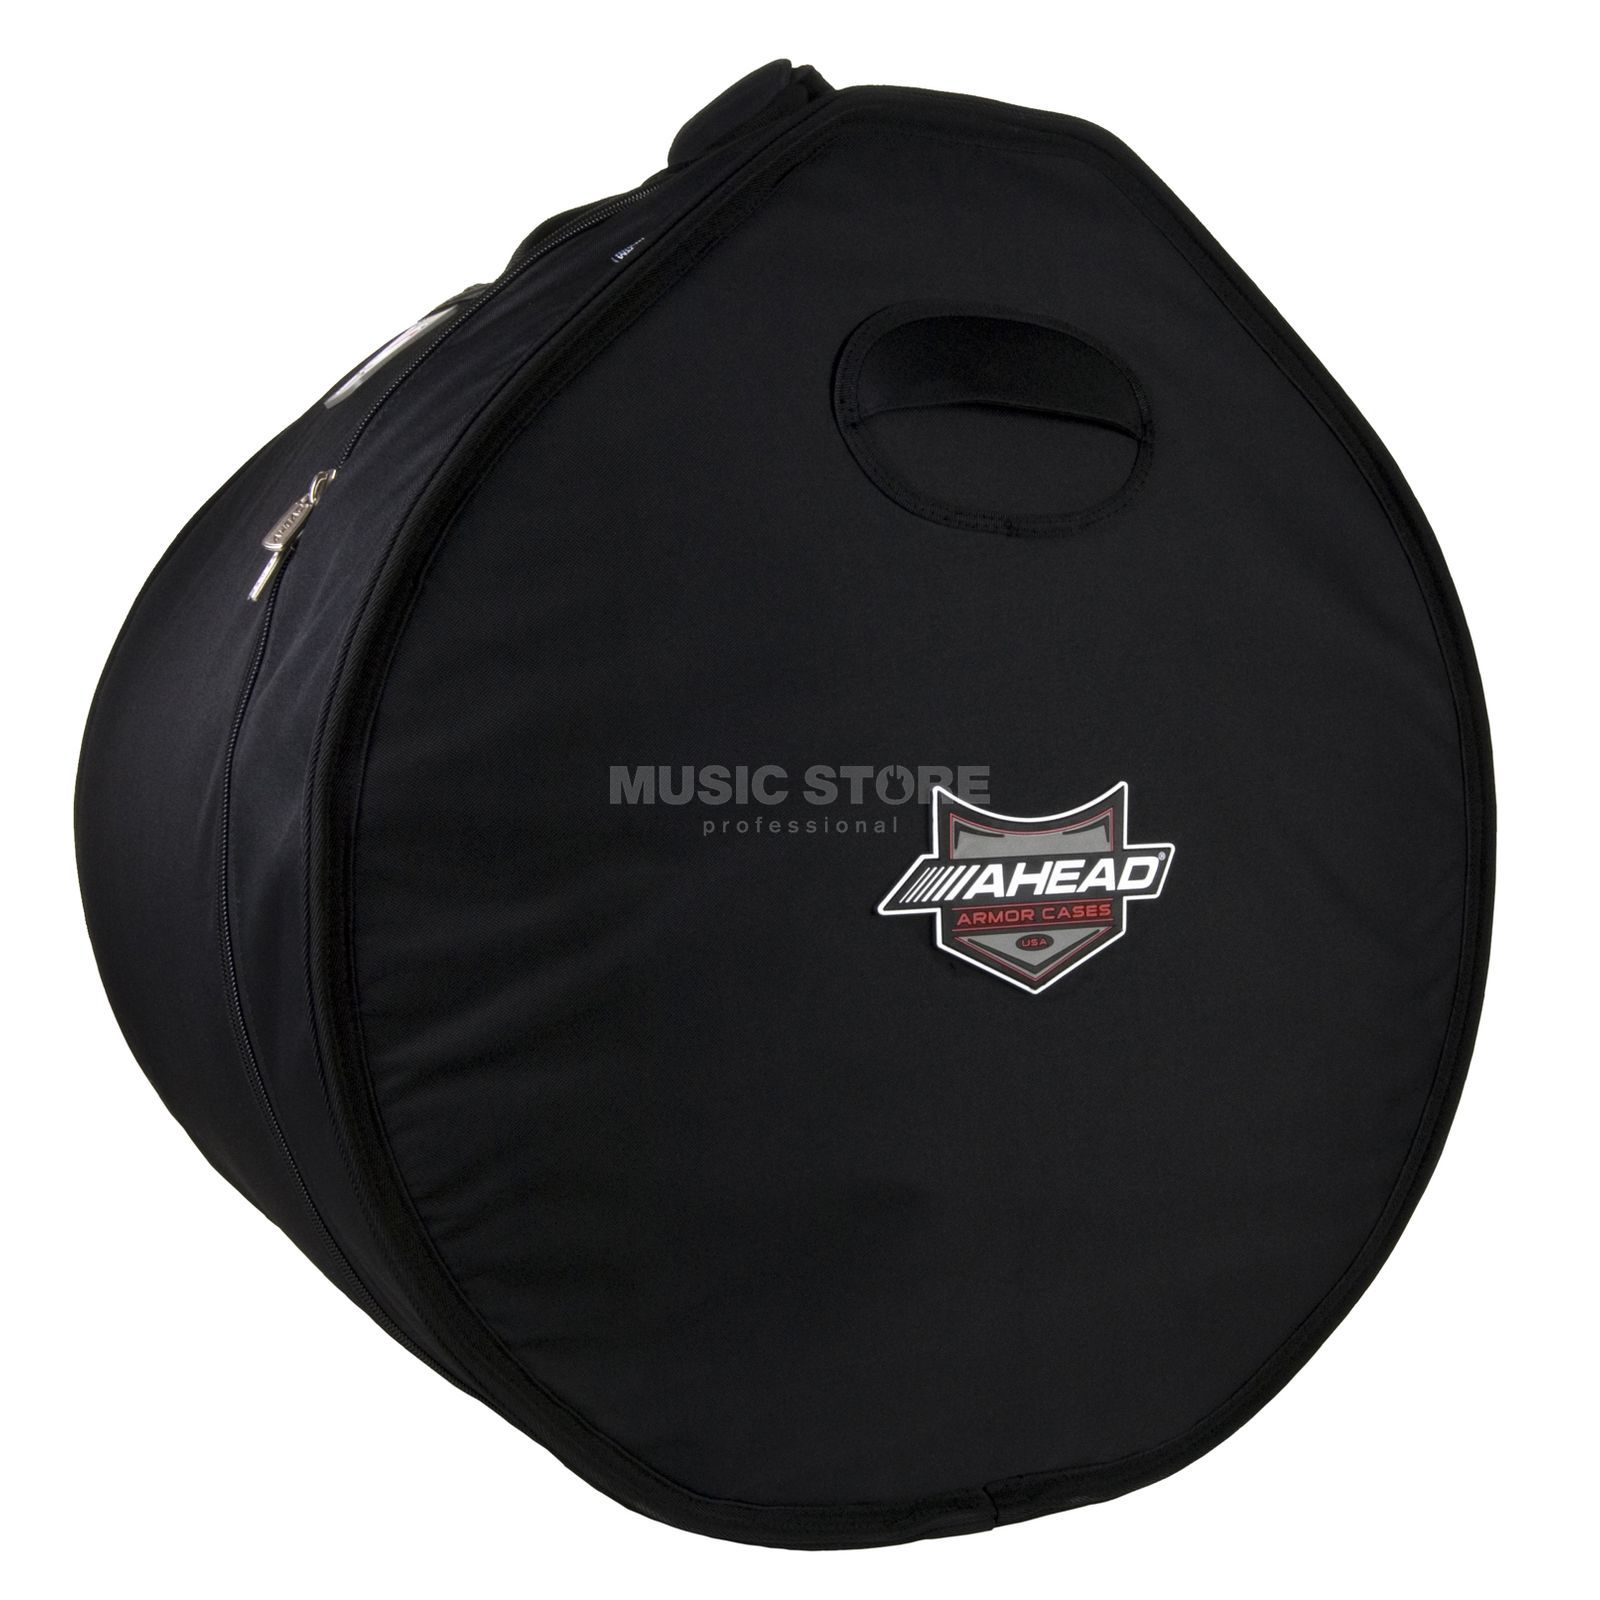 "Ahead Armor Cases BassDrum Bag 22""x14""  Product Image"